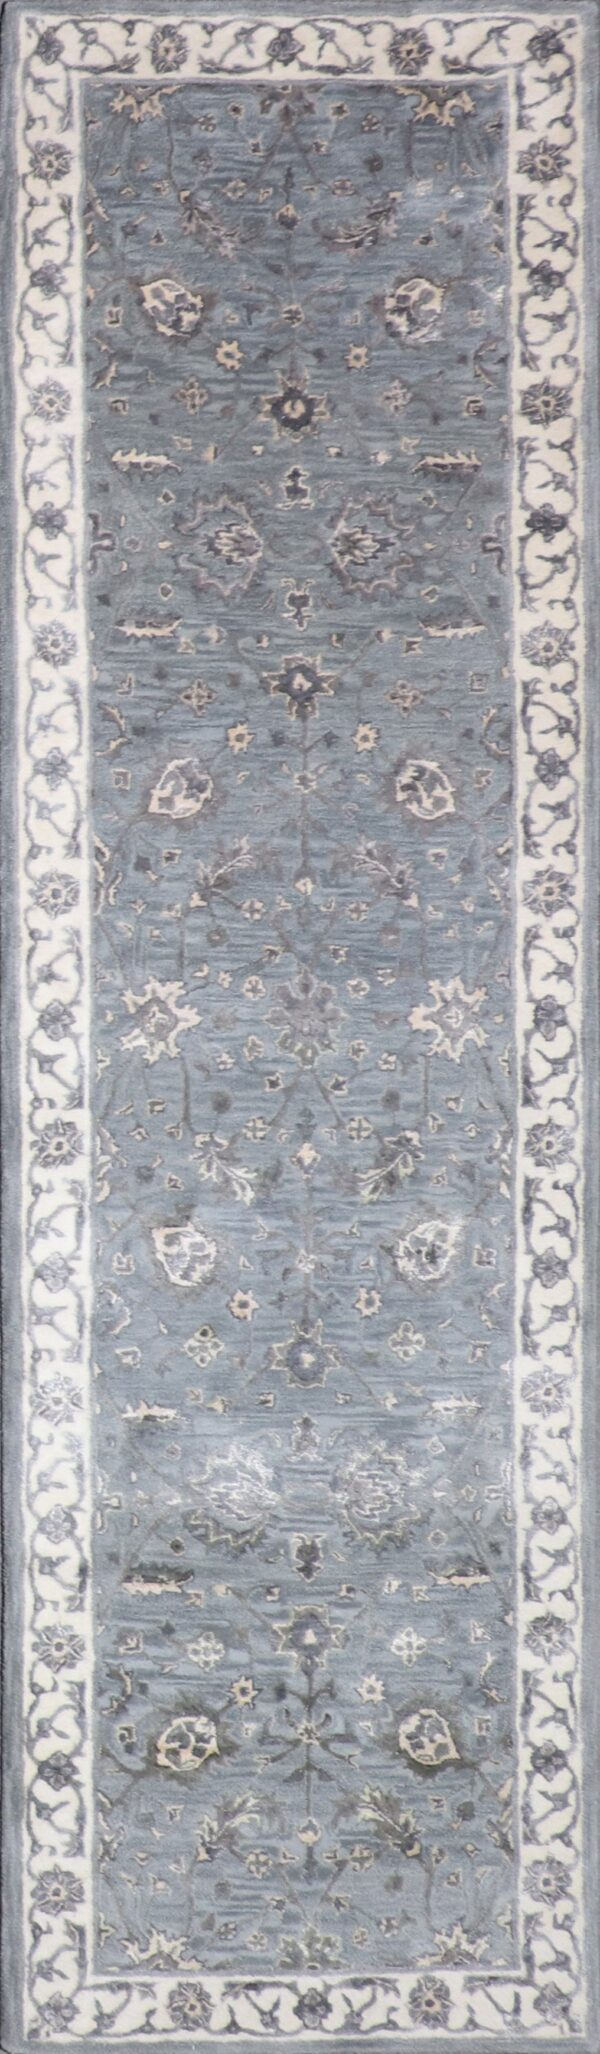 """2'11""""x10' Decorative Vintage Wool & Silk Hand-Tufted Rug - Direct Rug Import 